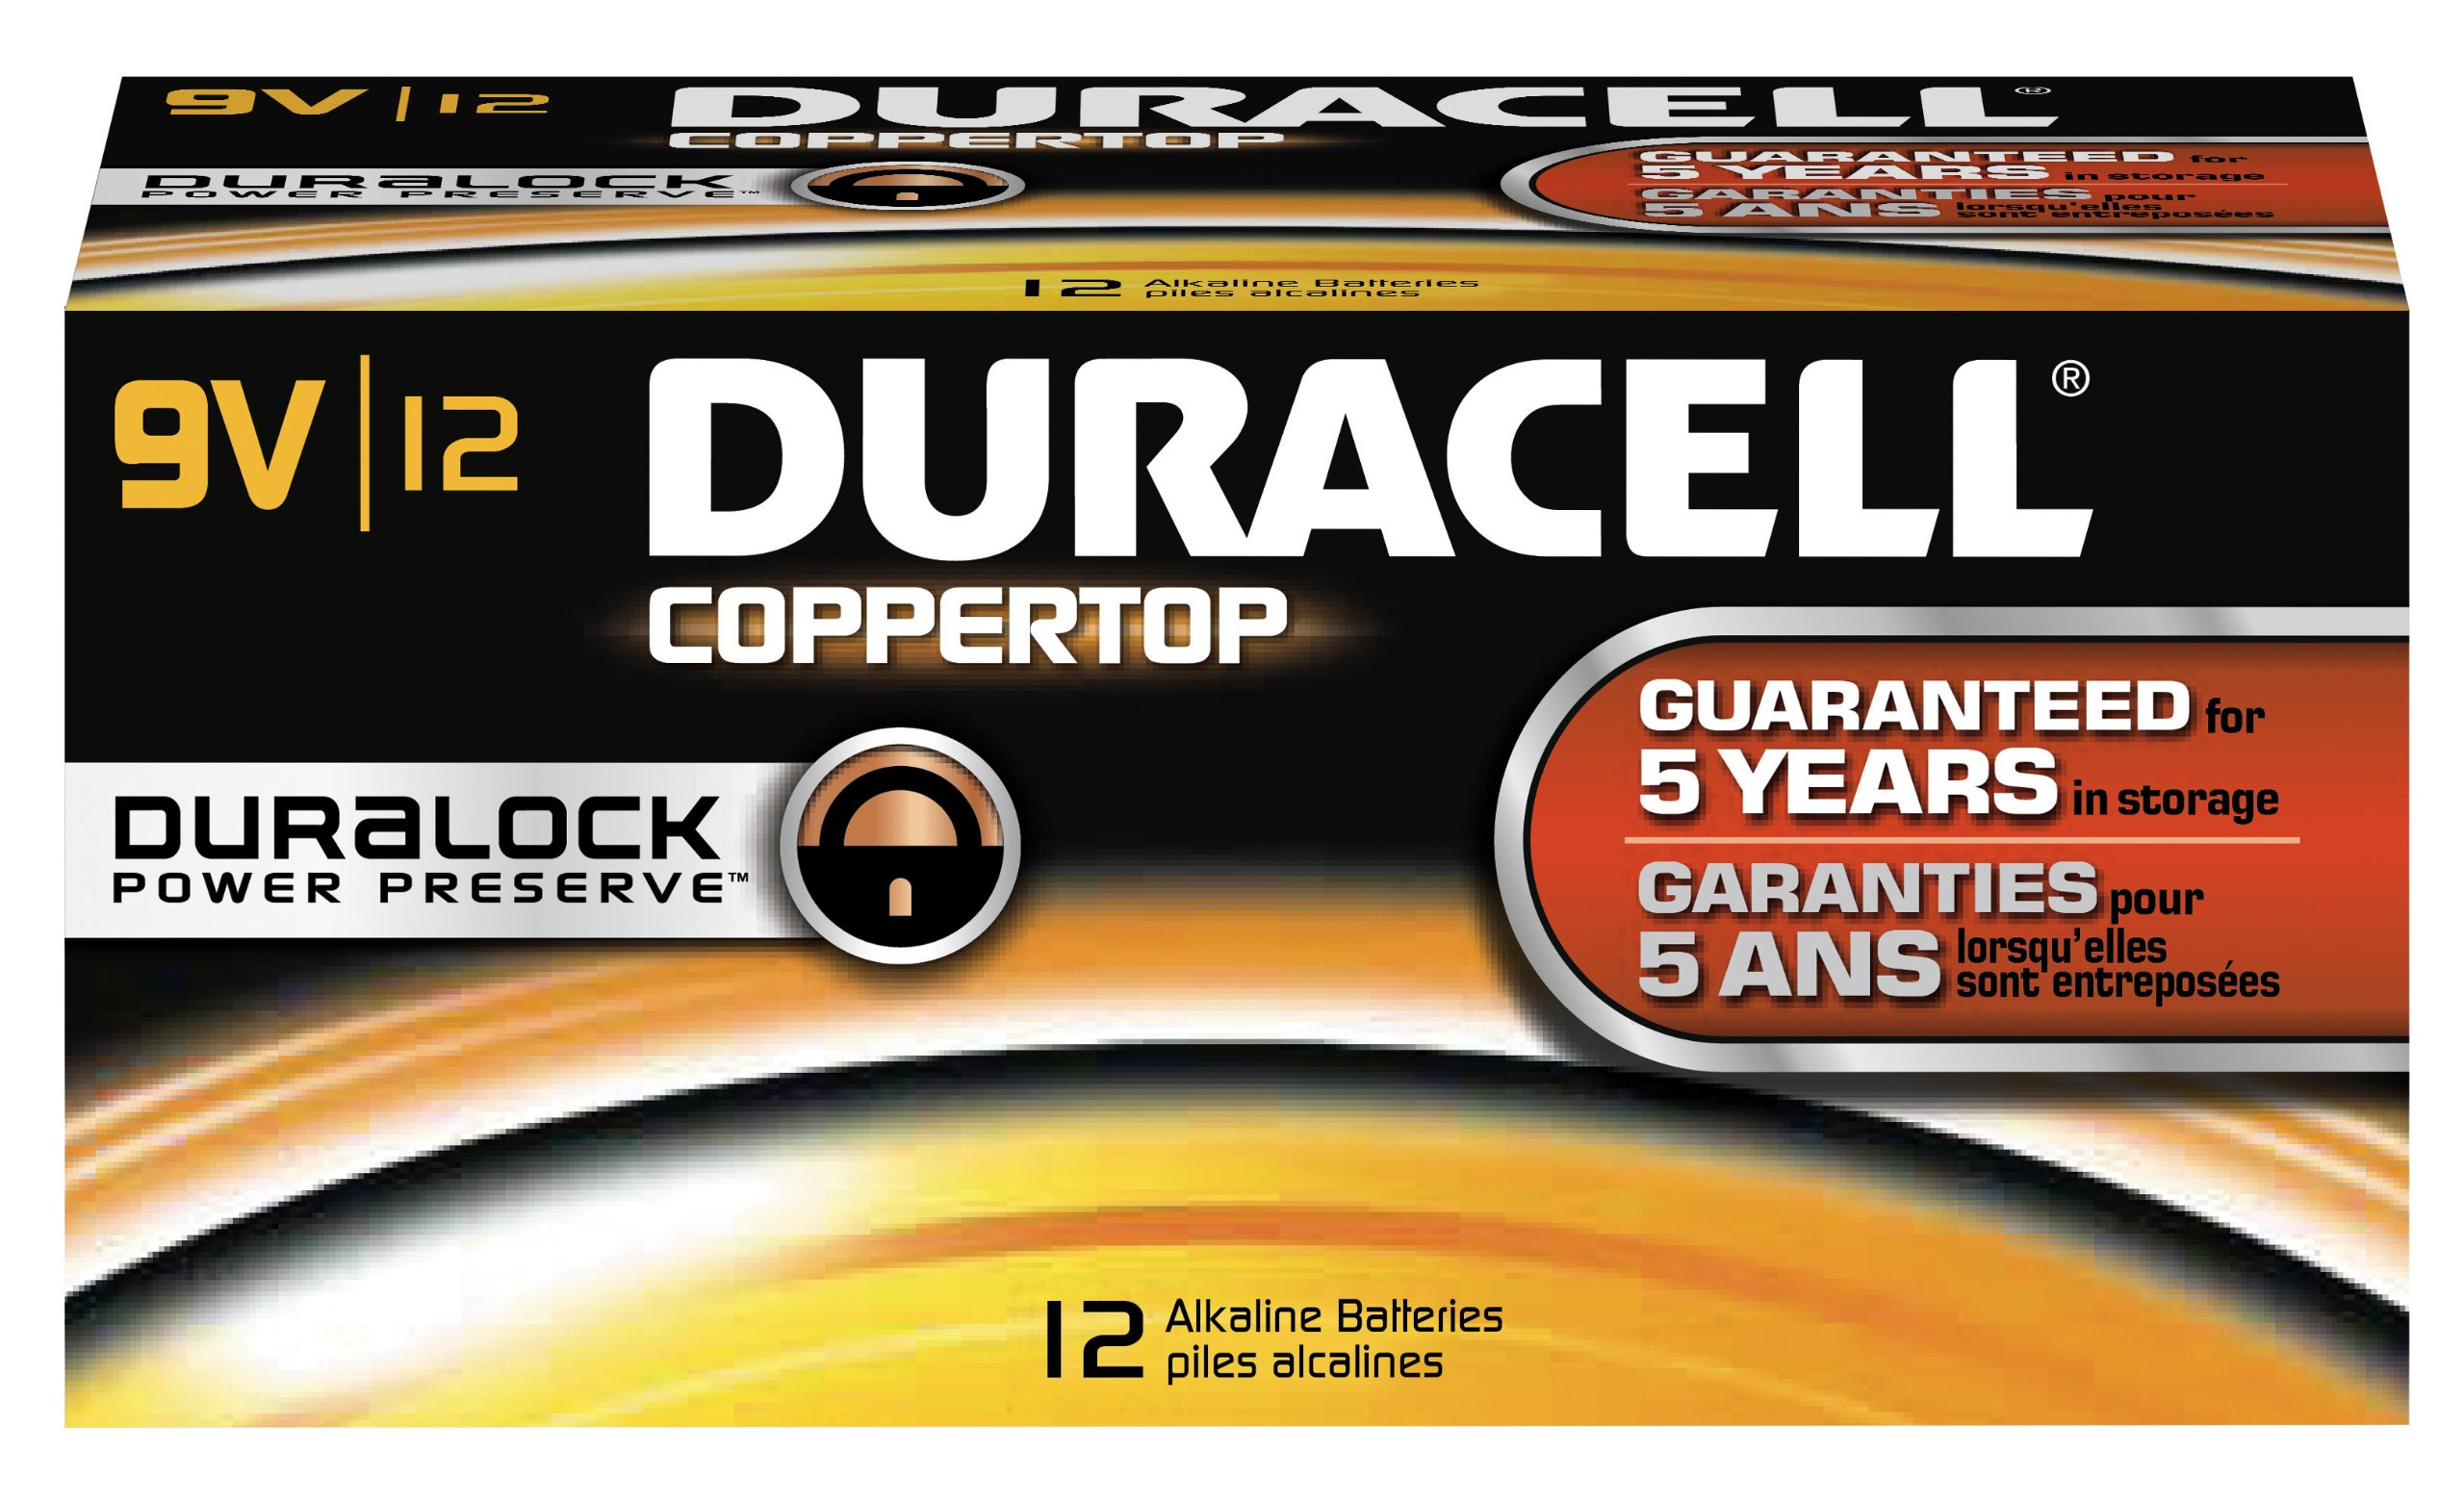 Duracell MN1604BKD Coppertop Alkaline-Manganese Dioxide Battery, 9V (Case of 72) by Duracell